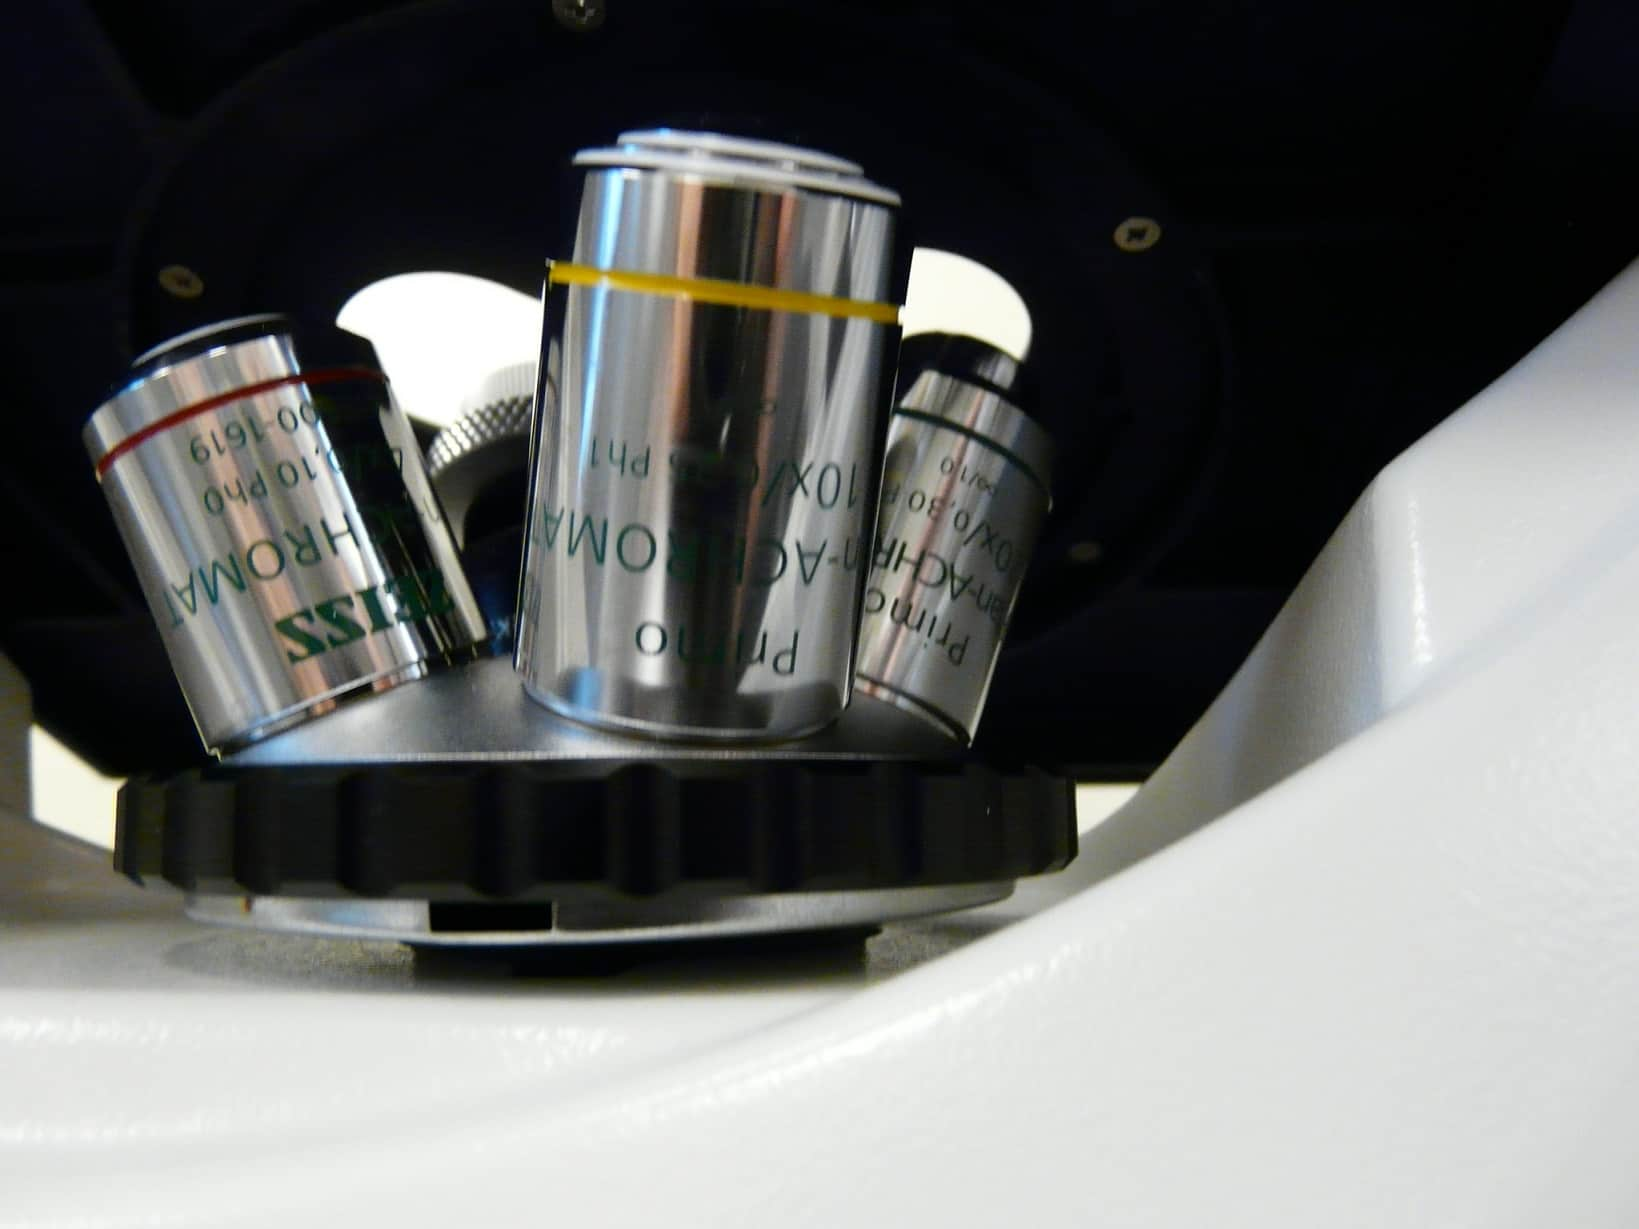 Zeiss Model 370 Inverted Microscope with LCD Screen